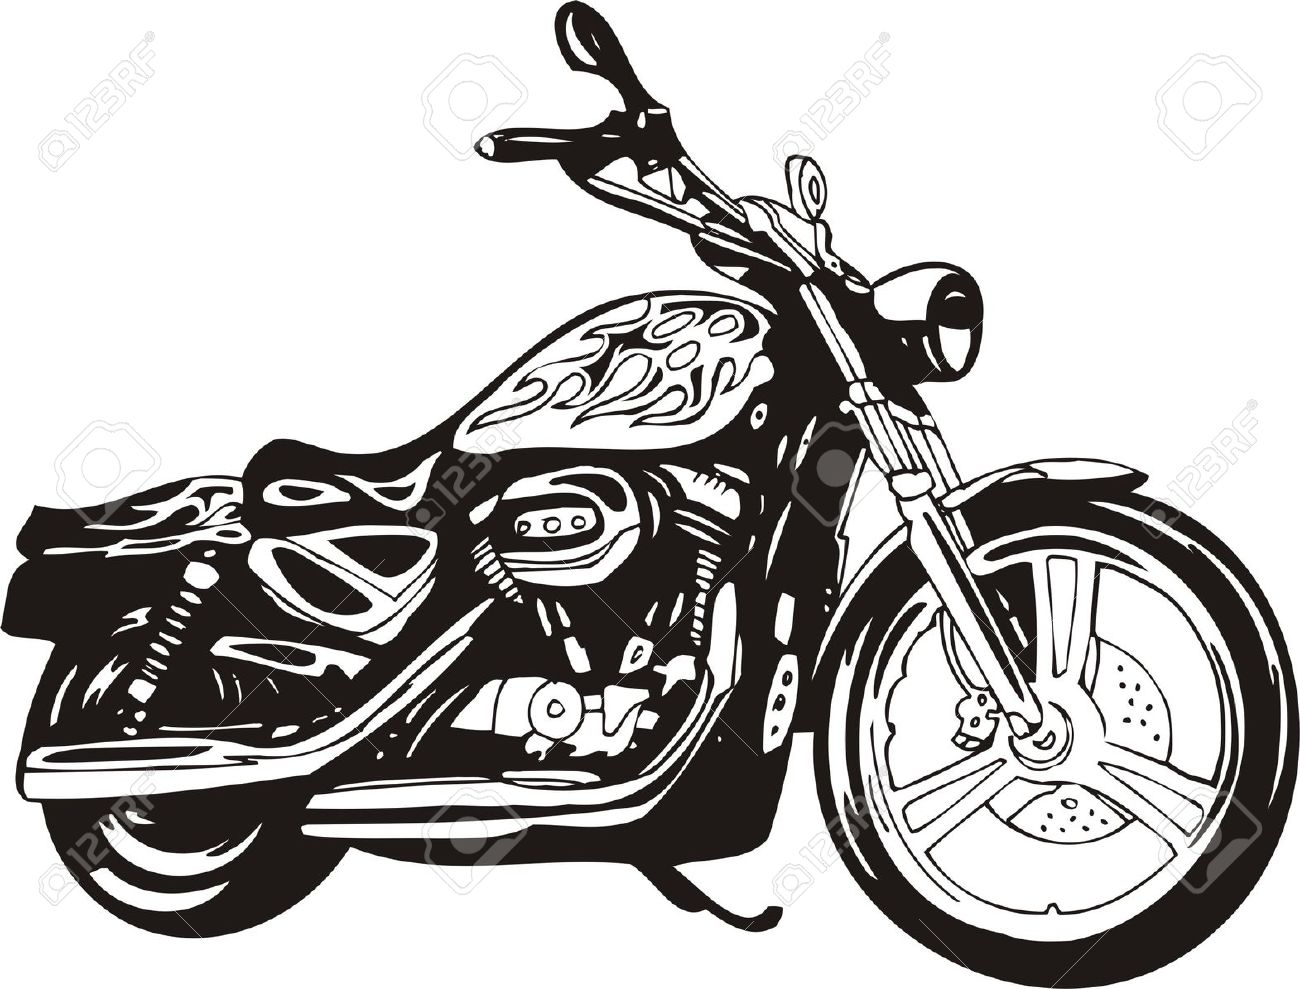 1300x989 Motorcycle Silhouette Clipart